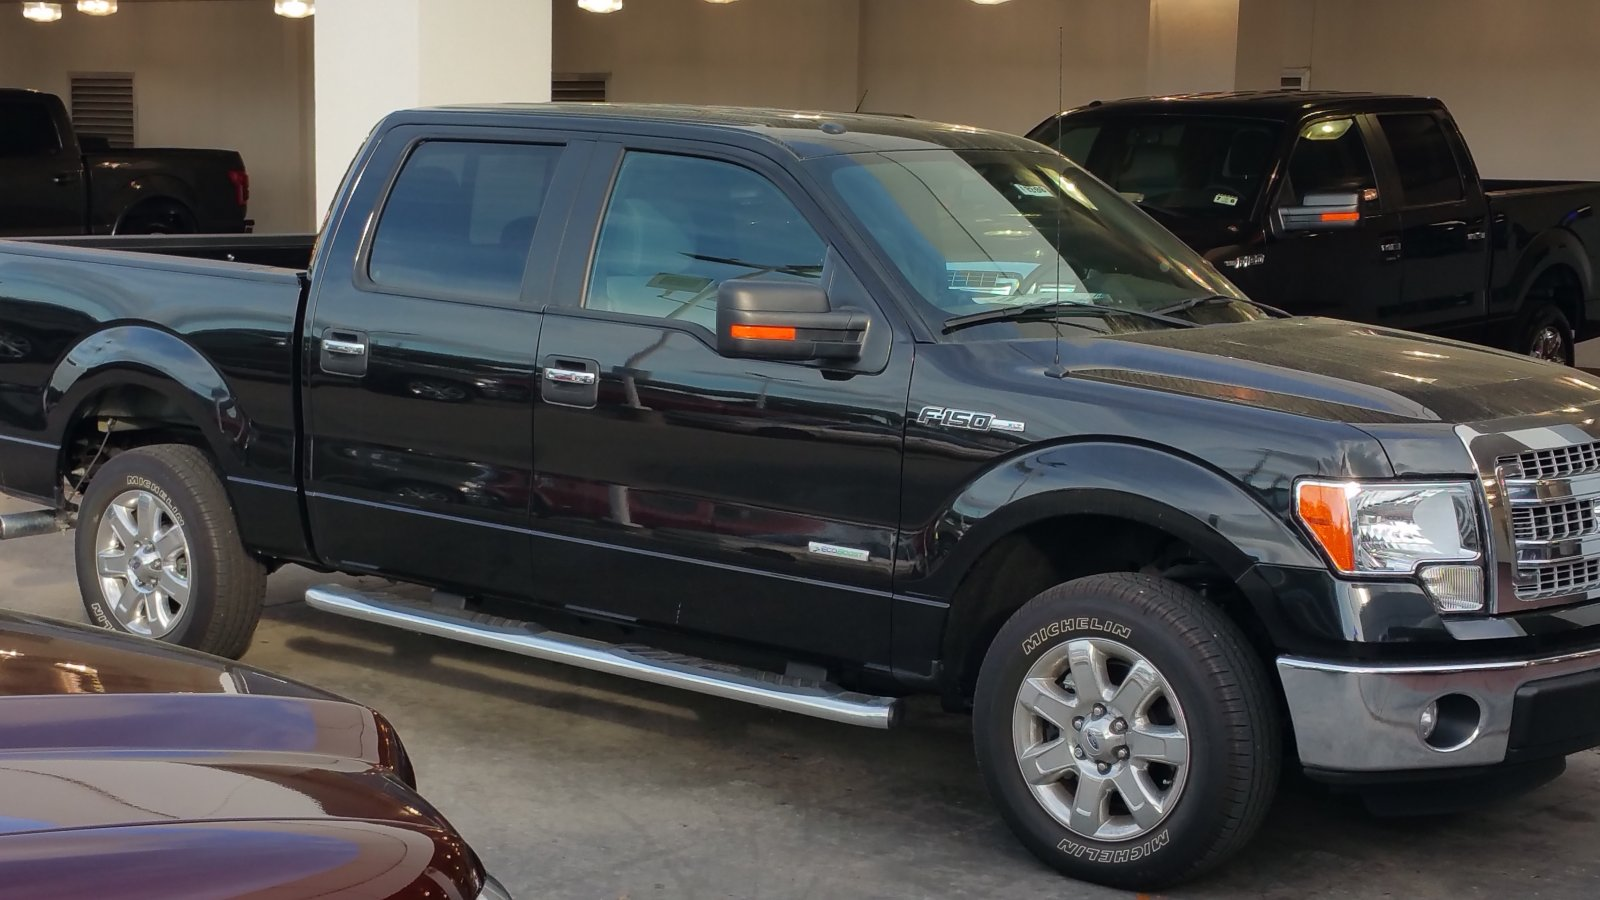 Click image for larger version  Name:F150.jpg Views:81 Size:199.3 KB ID:236812